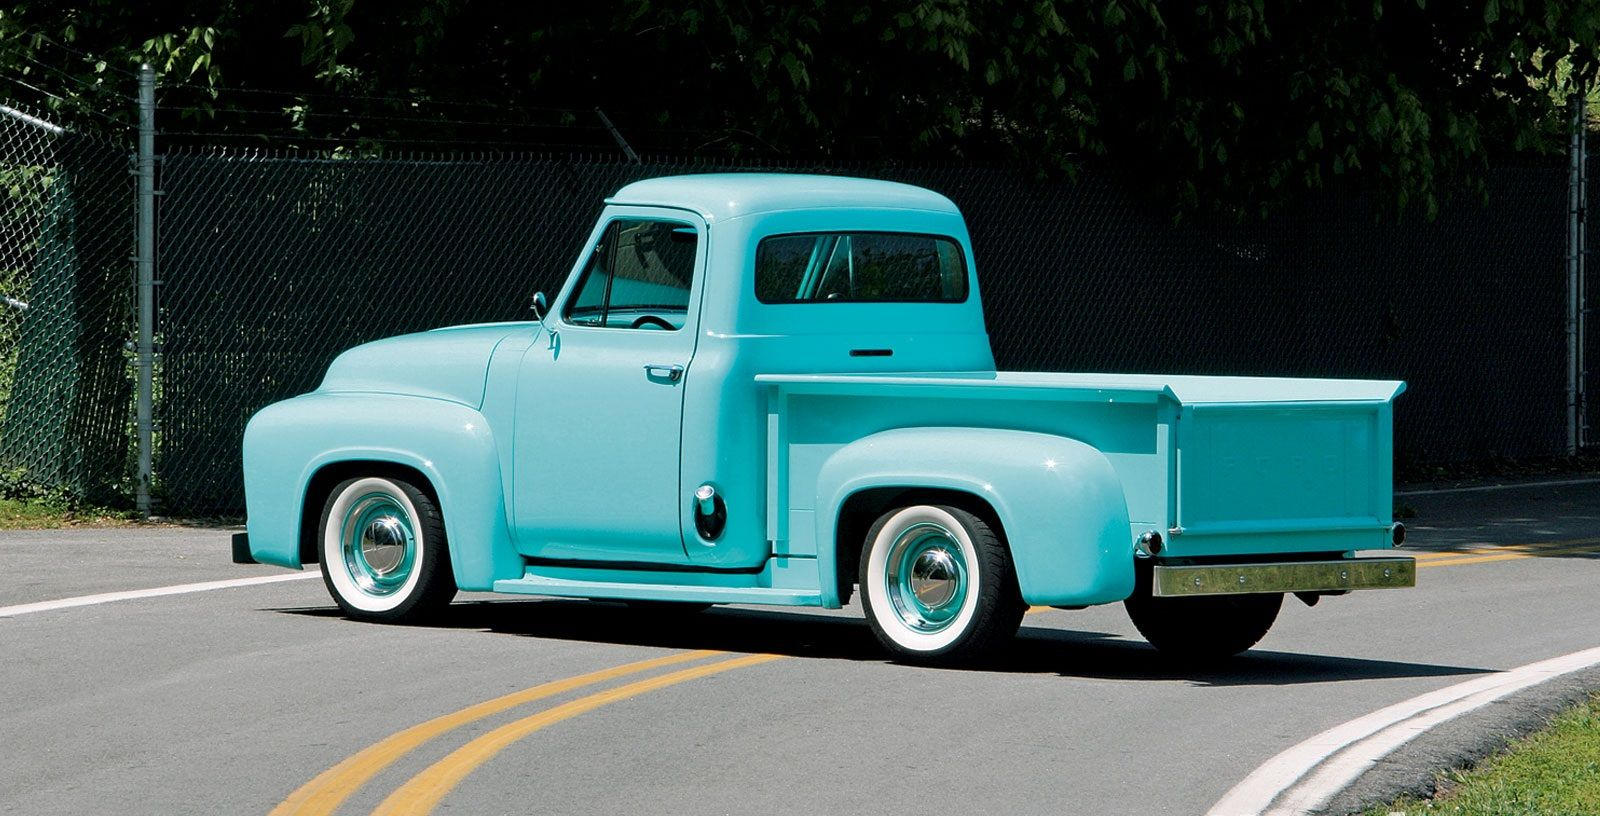 Cheap classic 1955 ford f100 for sale today you can get great prices on 1955